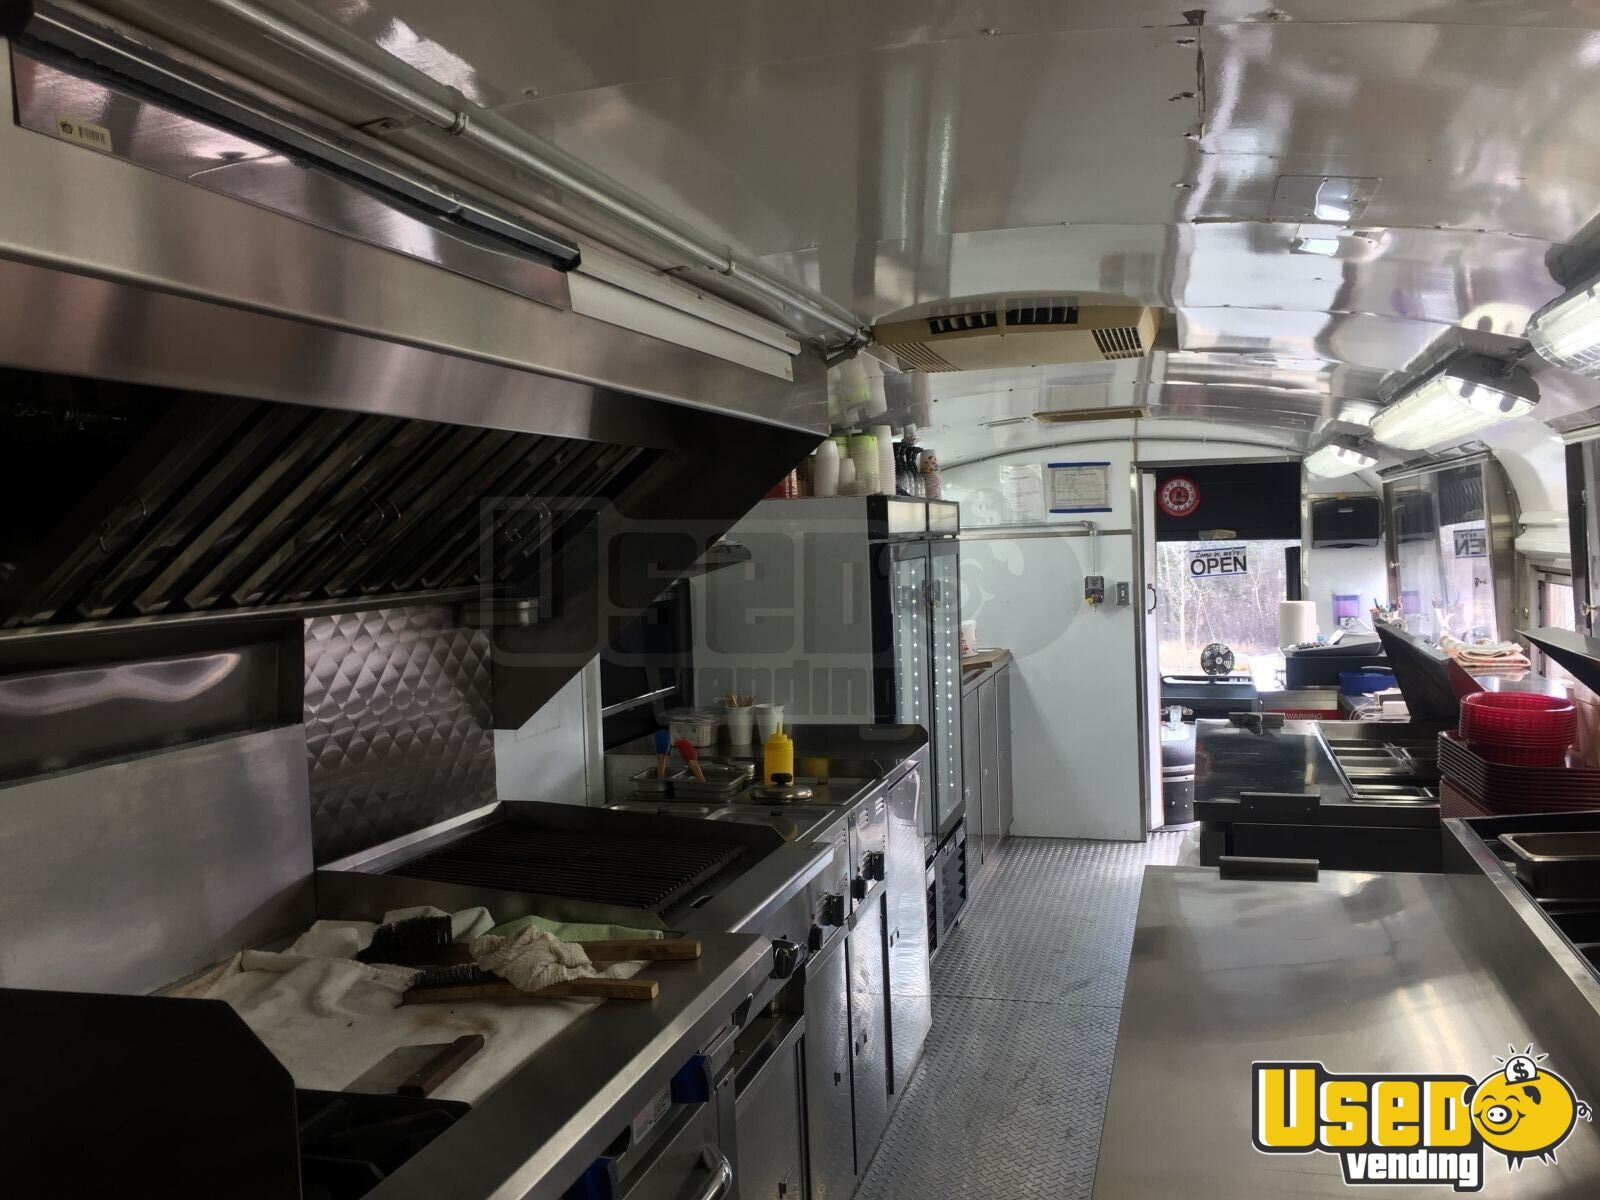 1976 Bluebird All-purpose Food Truck Microwave Yukon Territory Gas Engine for Sale - 20